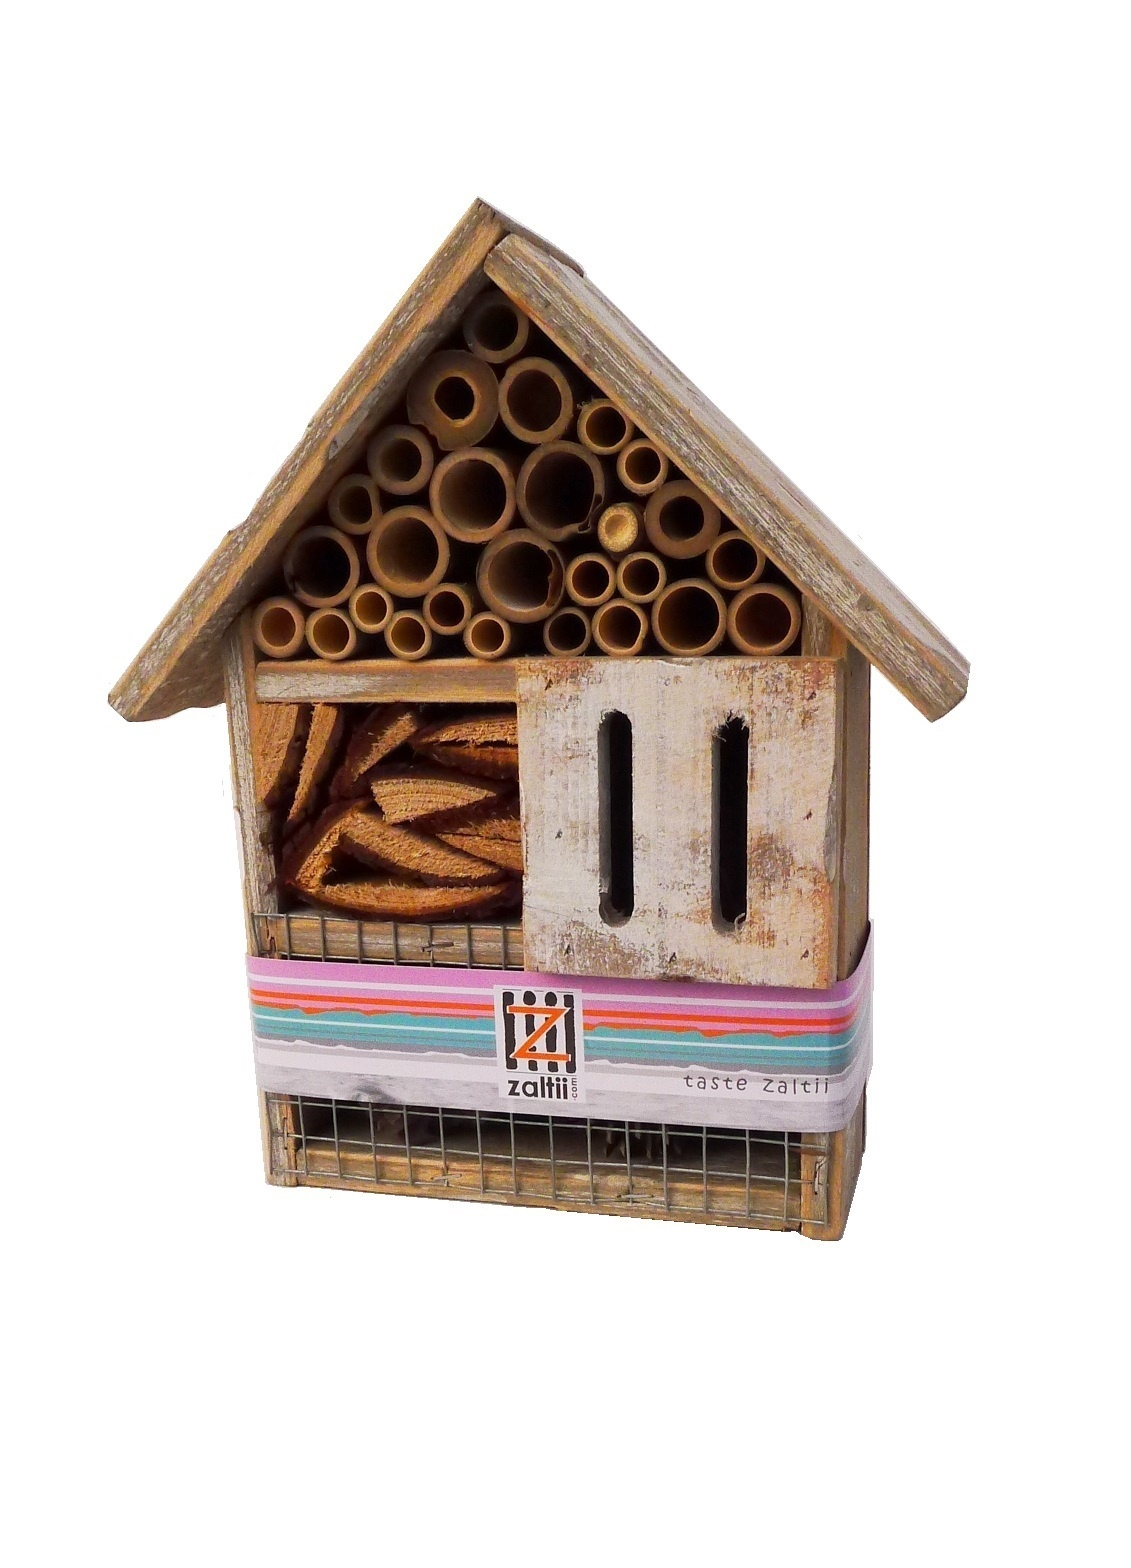 birdhouse old dutch insect hotel A wide-5